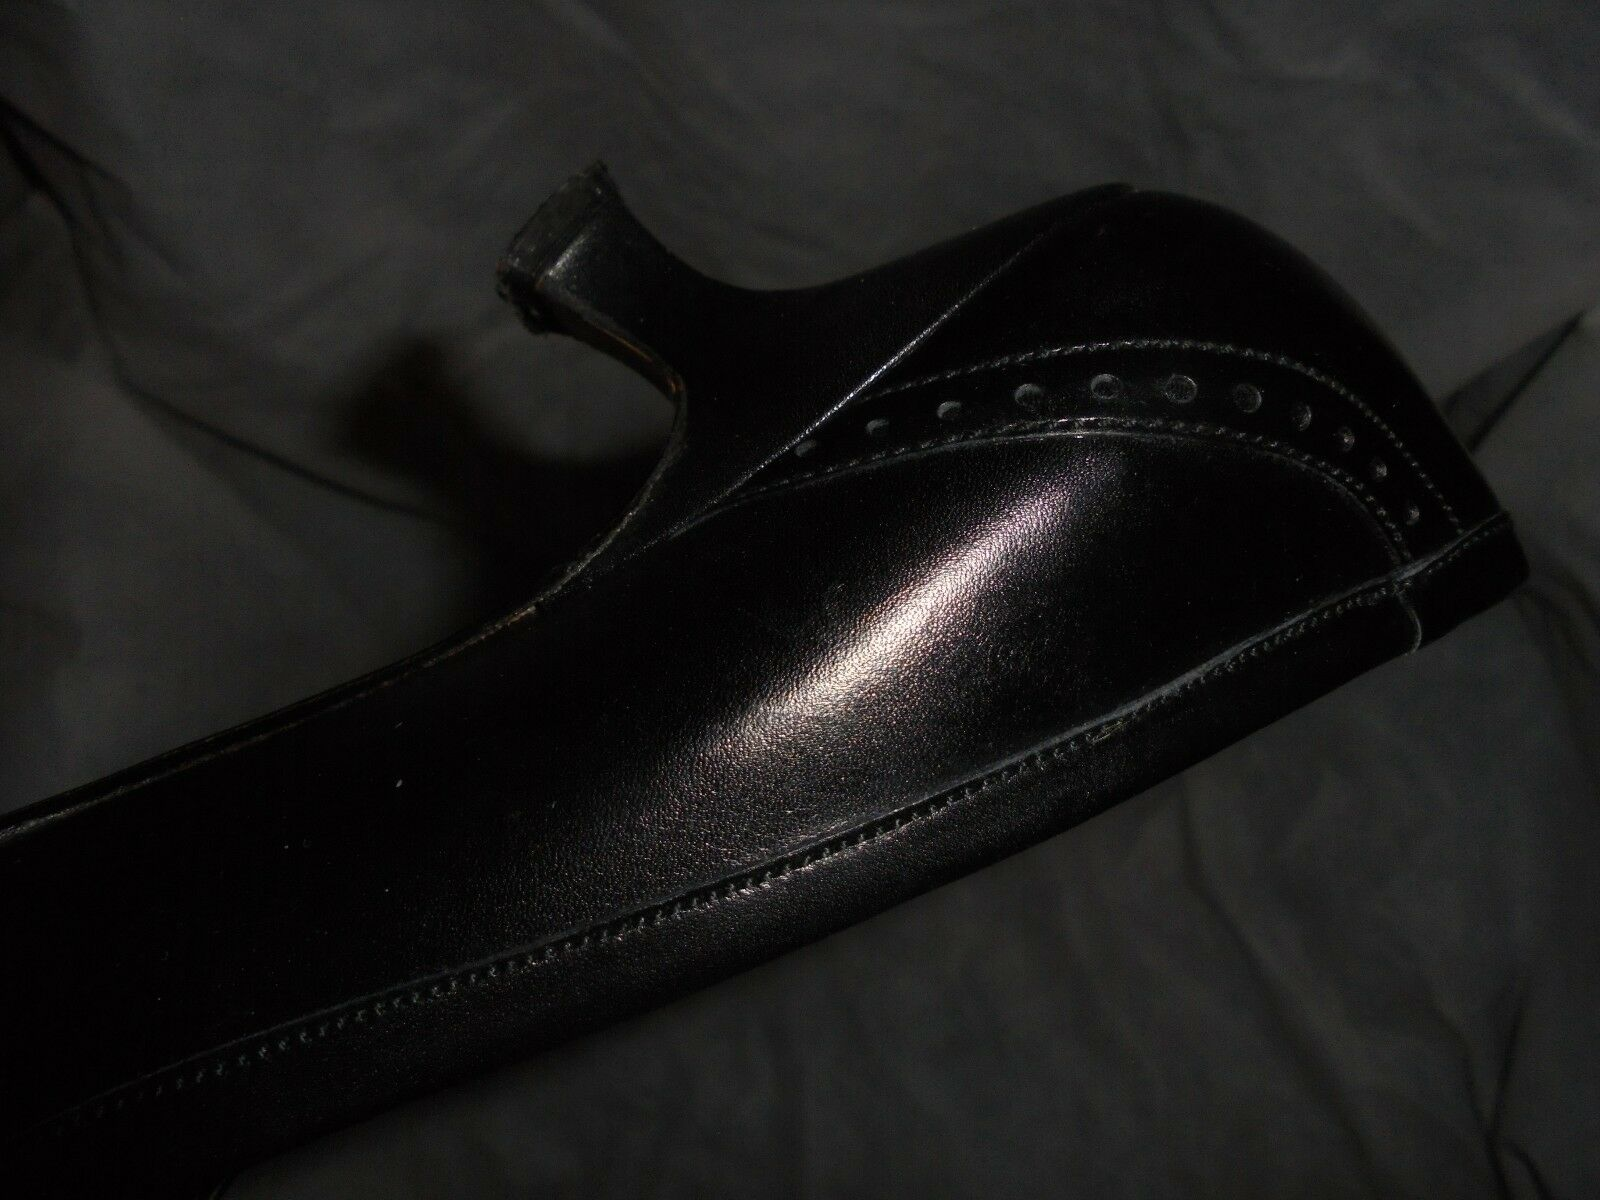 L.K. BENNETT WOMEN'S BLACK LEATHER SLIP 3 ON Schuhe SIZE UK 3 SLIP EU 36 VGC 0d02eb